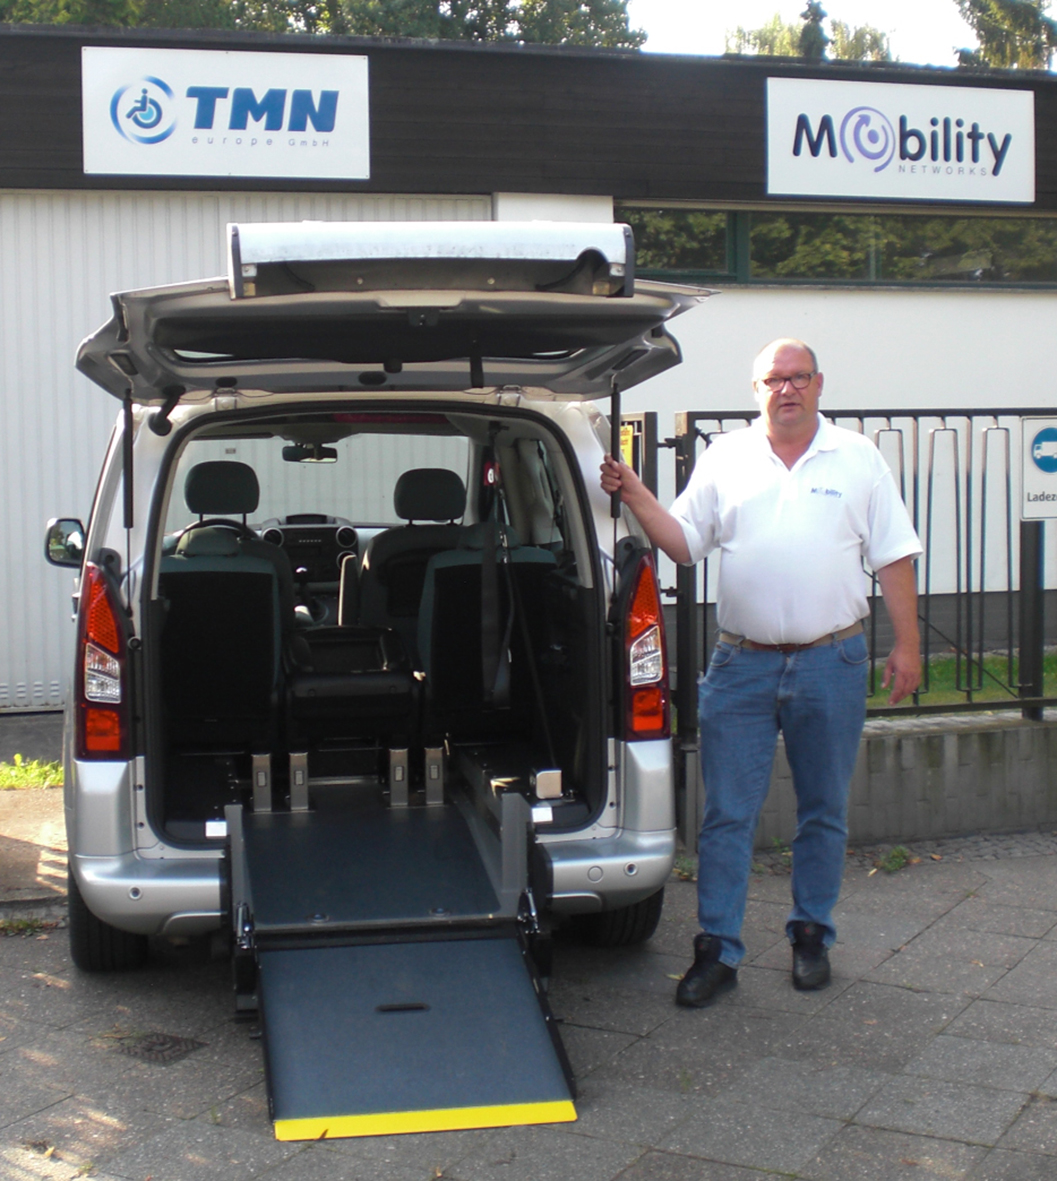 Mobility Networks Germany launches following acquisition of TMN Europe